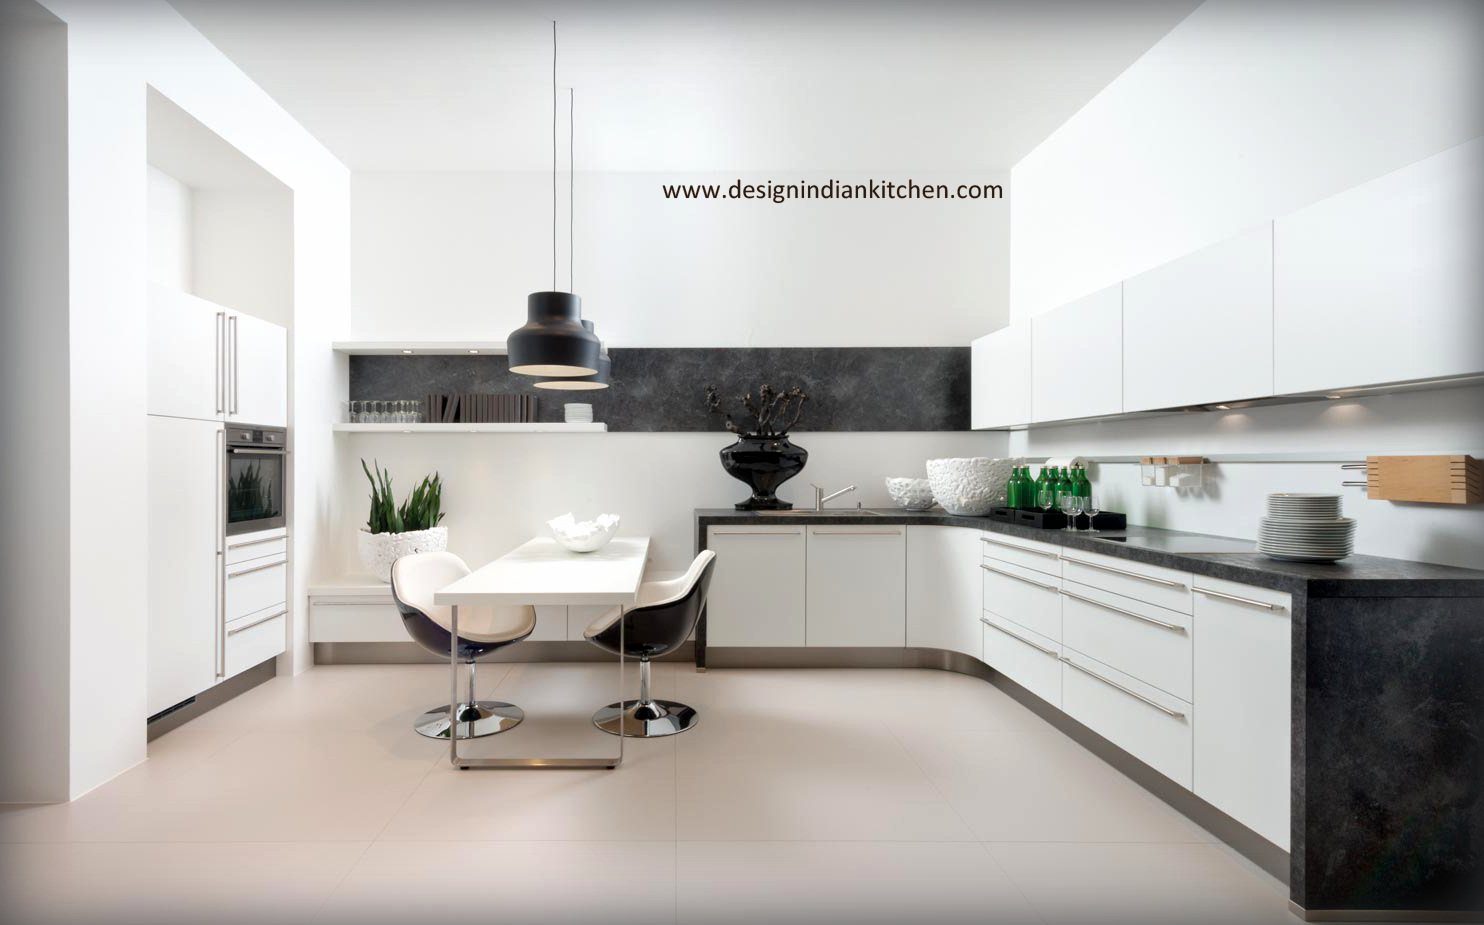 kitchen design concepts. Kitchens for Everyone MODULAR KITCHEN CONCEPTS  CONCEPT OF KITCHENS